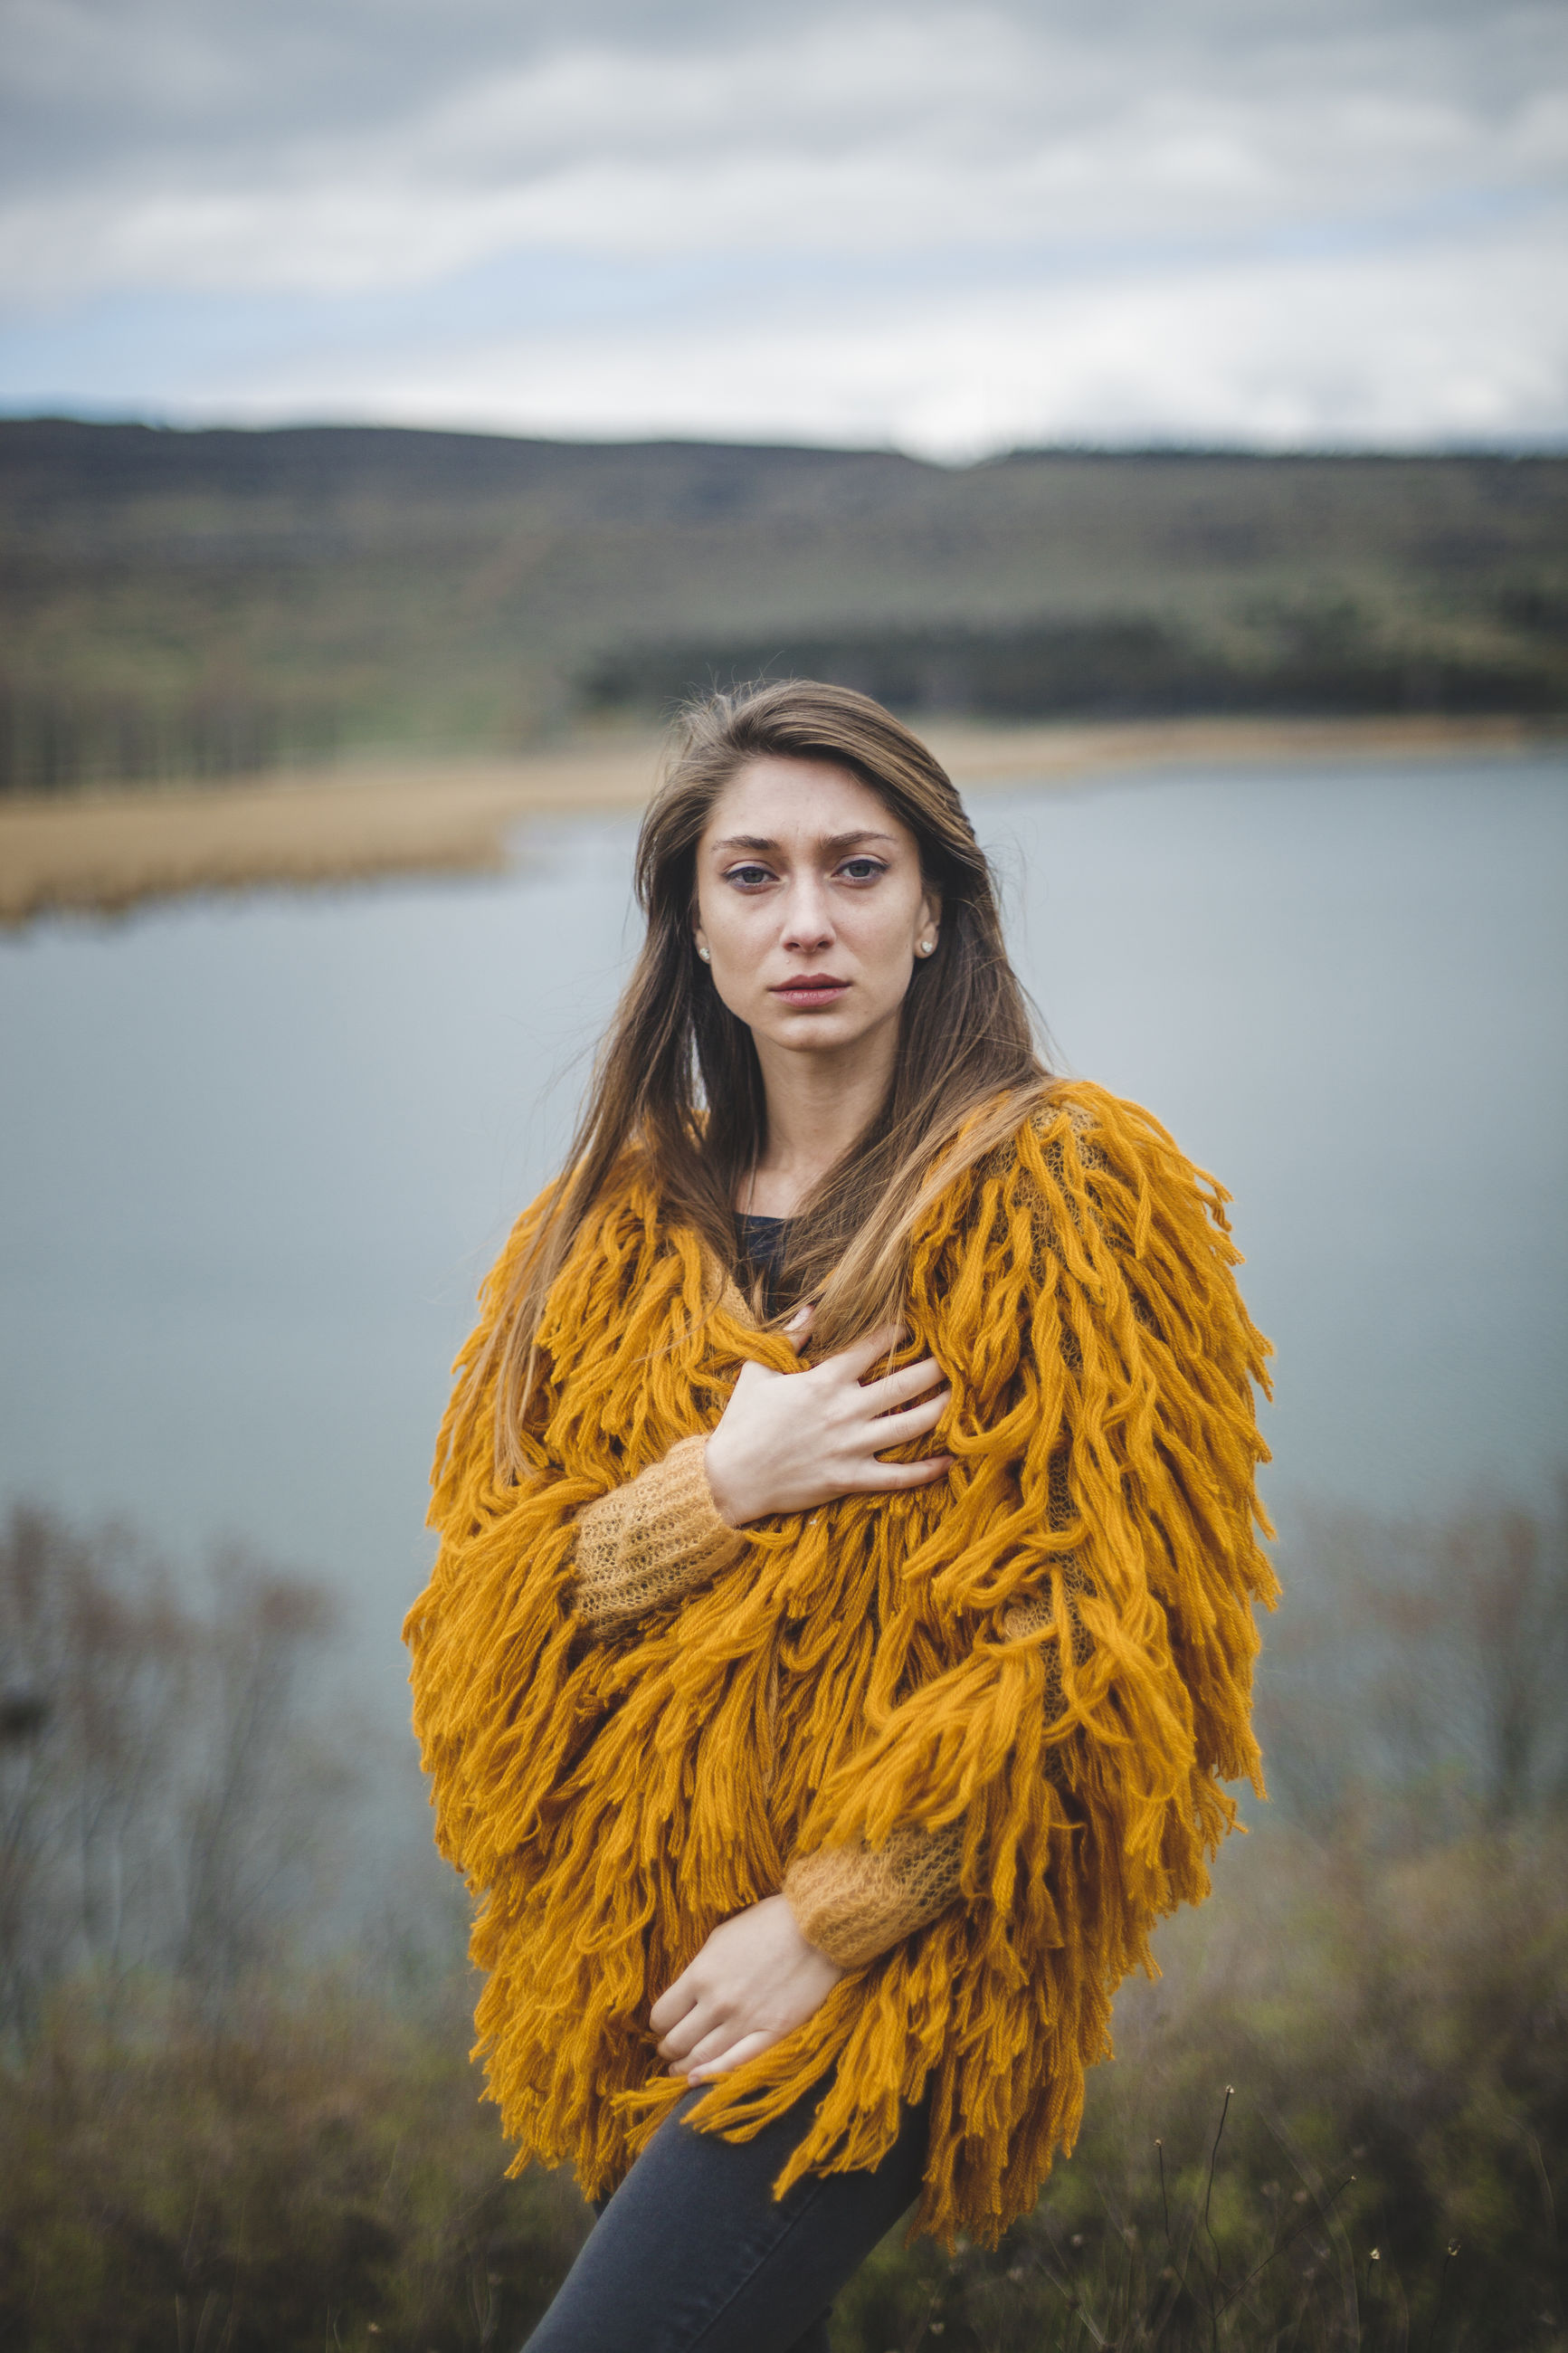 Portrait of woman in warm clothing standing against lake